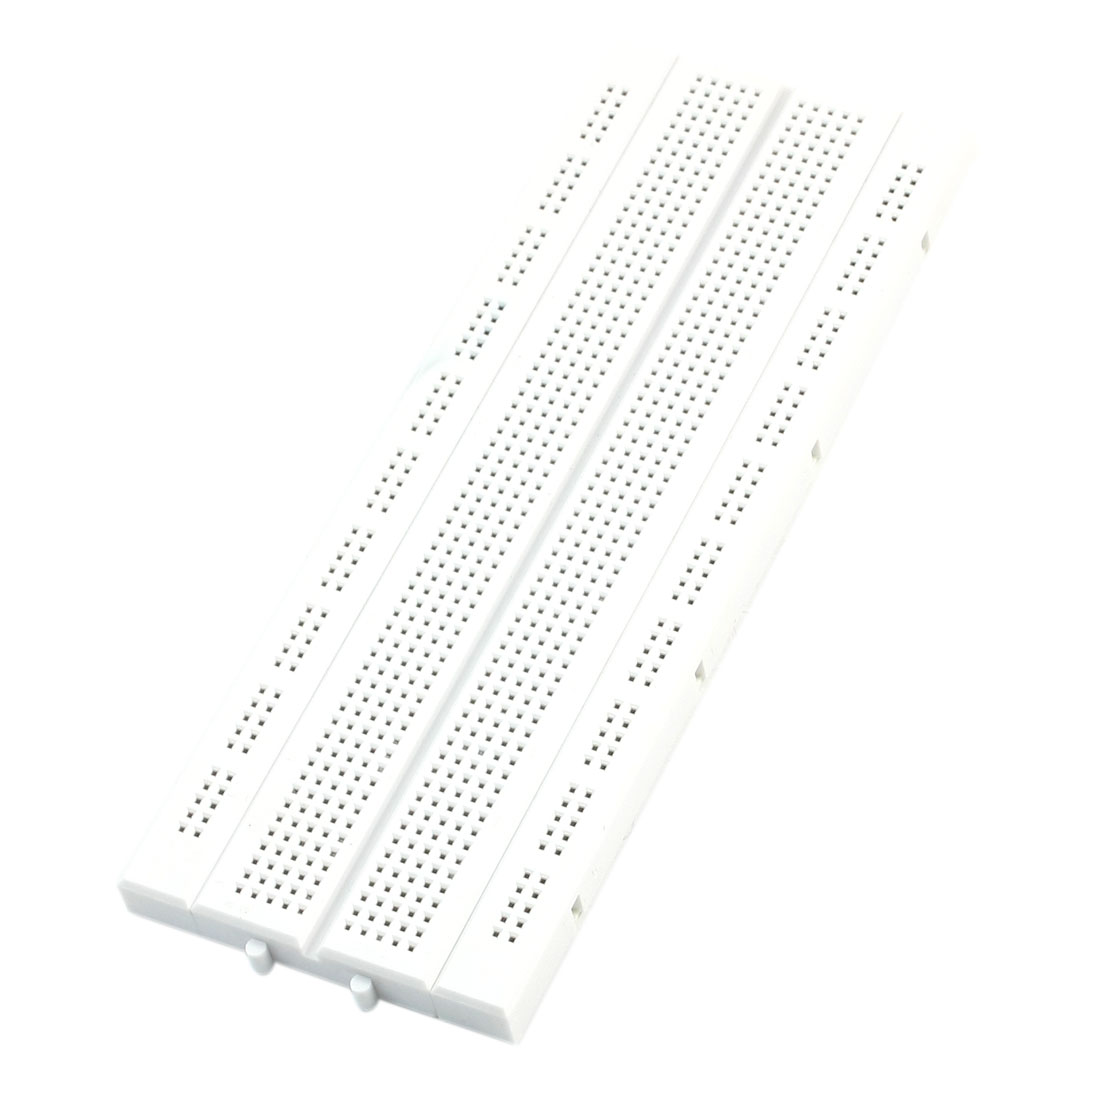 White 640 Tie Point PCB Board Test Prototype Solderless Breadboard 170x65x8mm